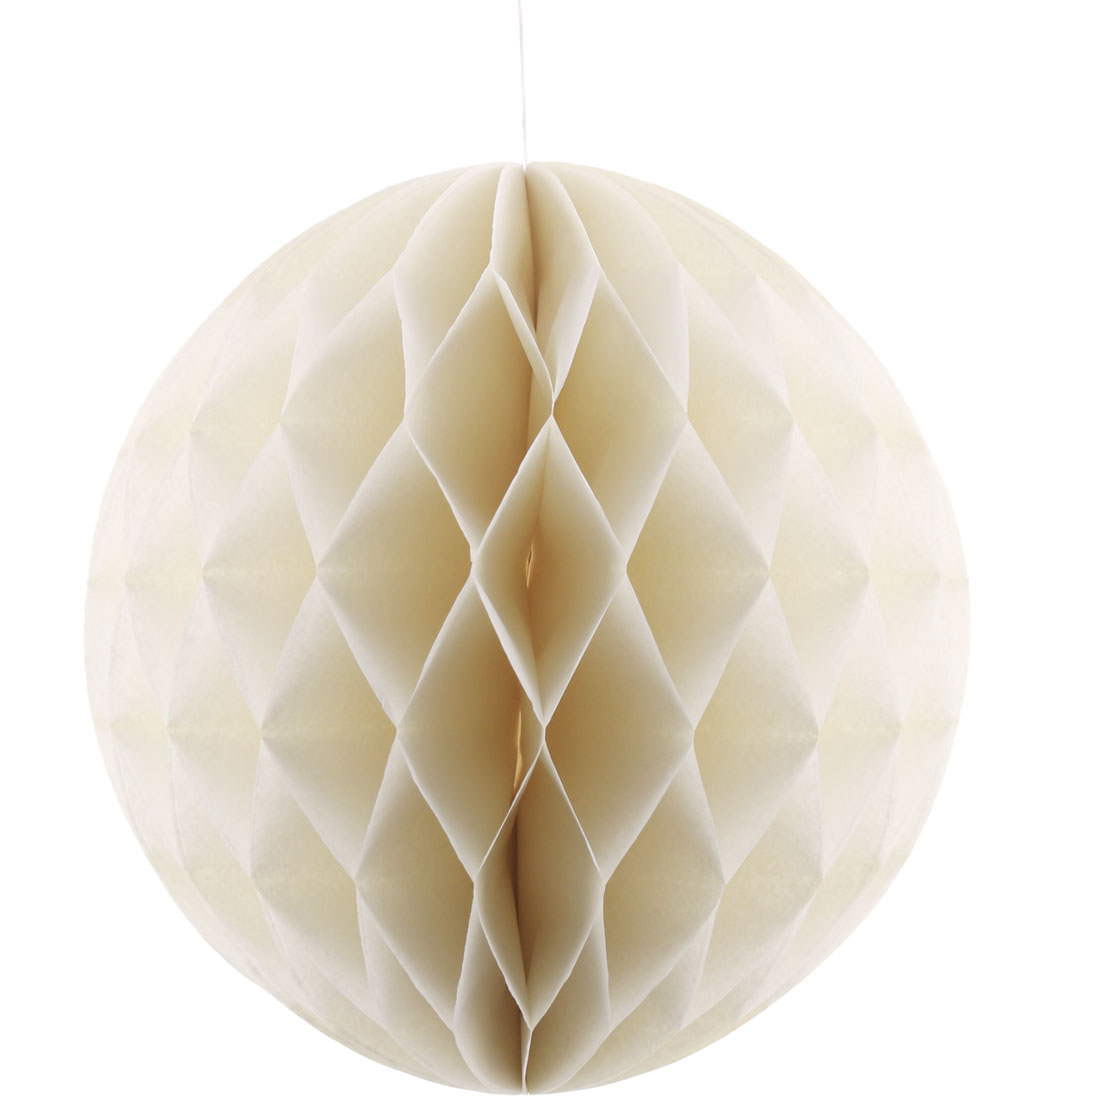 Home Paper Self-adhesive Handmade Hanging Decor Honeycomb Ball Off White 12 Inch Dia